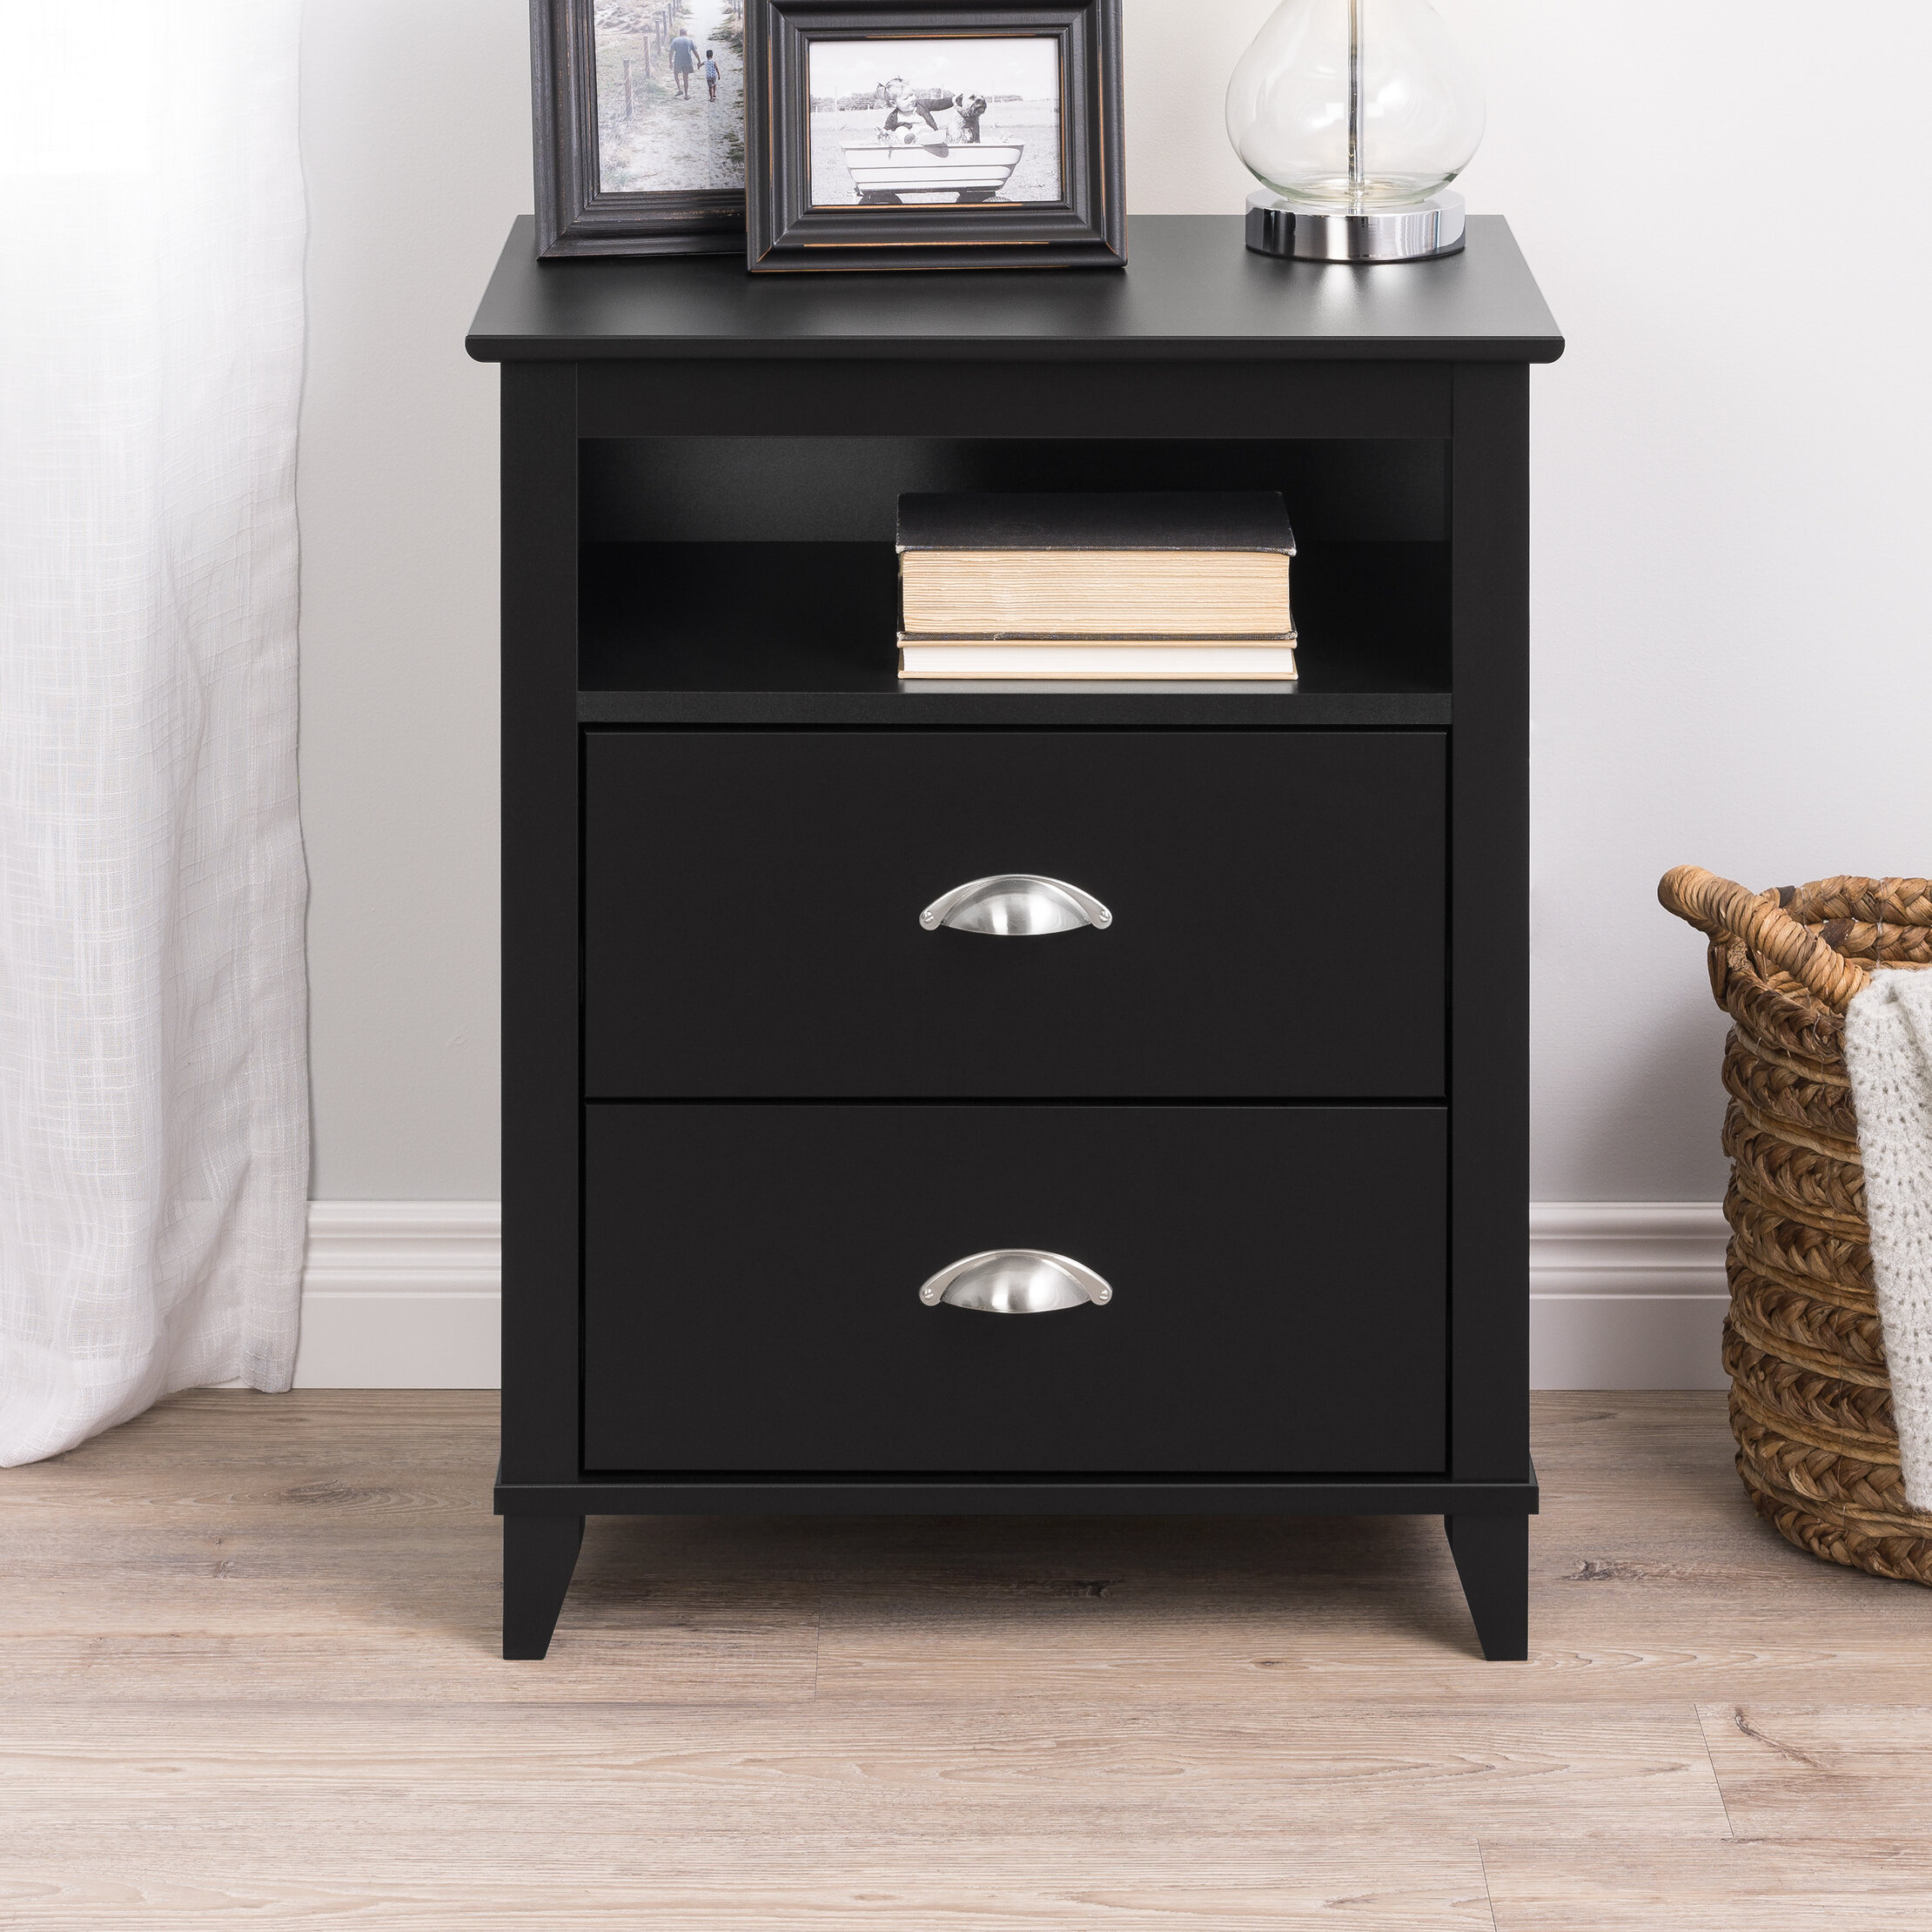 Beachcrest Home Pembrooke Traditional 2 Drawer Nightstand